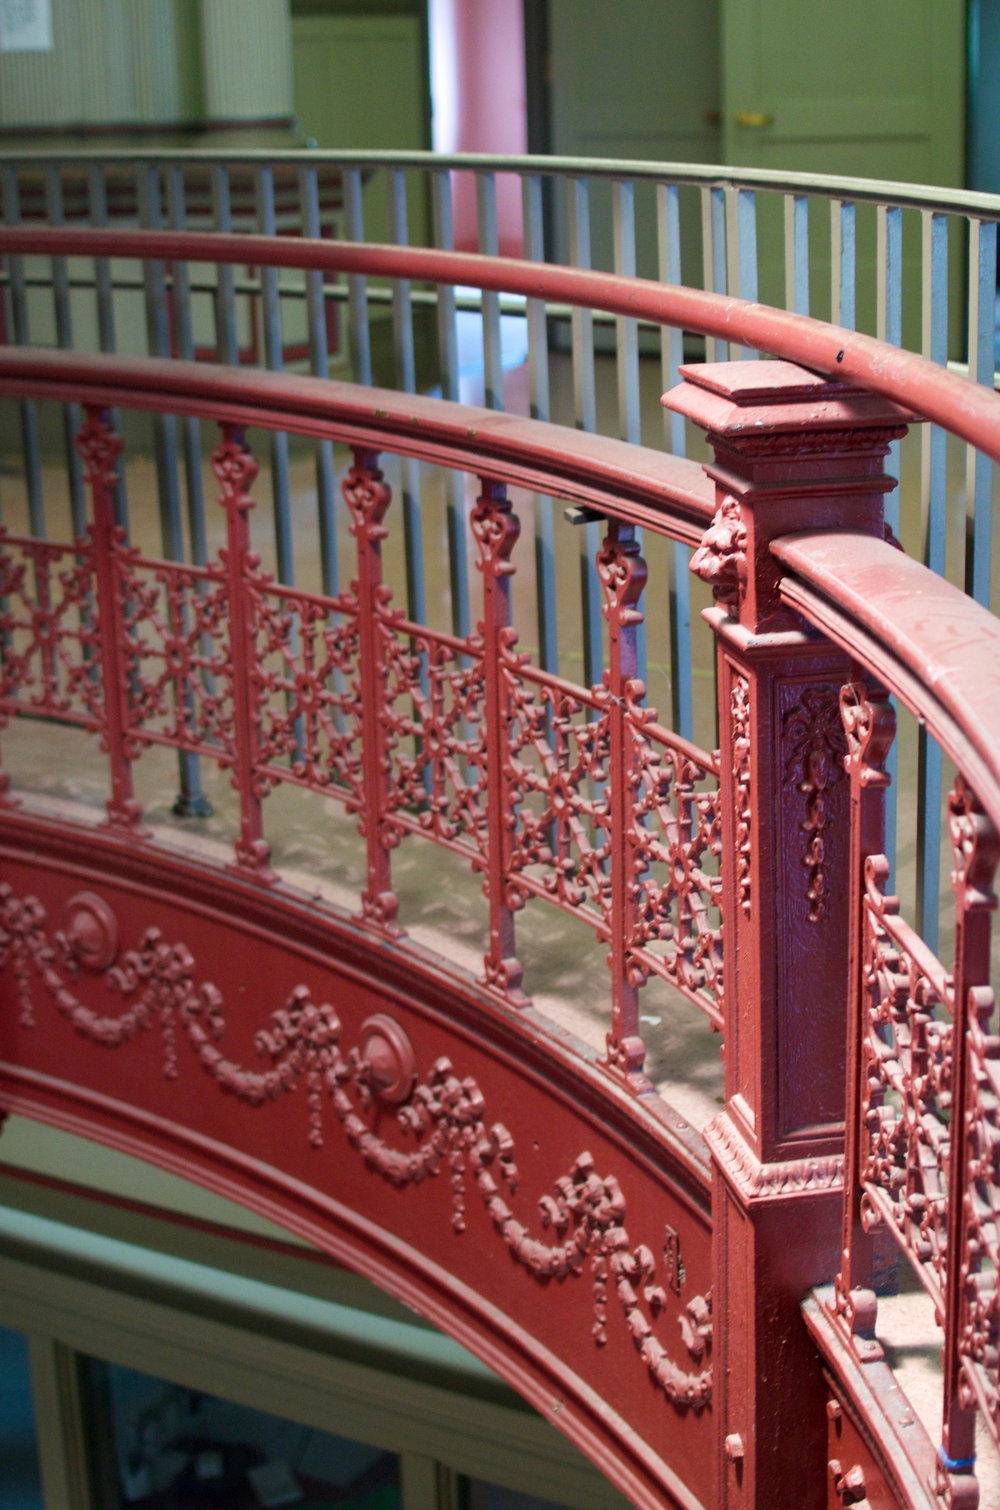 102 (railing to be used in interior railing).jpg